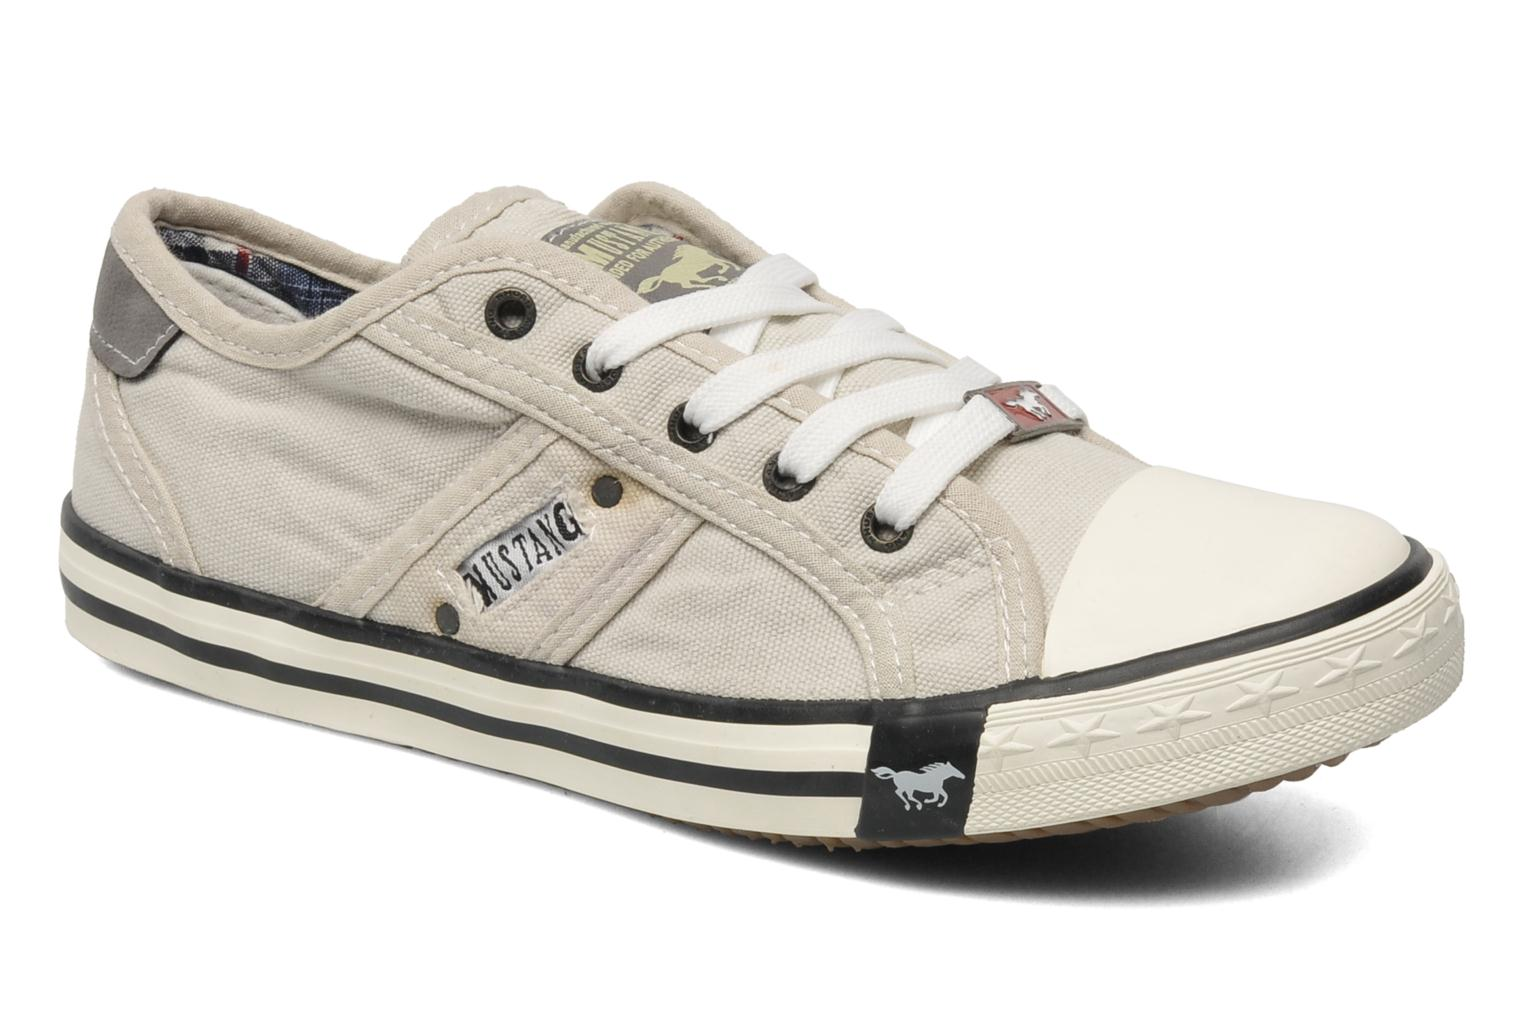 Sneakers Flaki by Mustang shoes